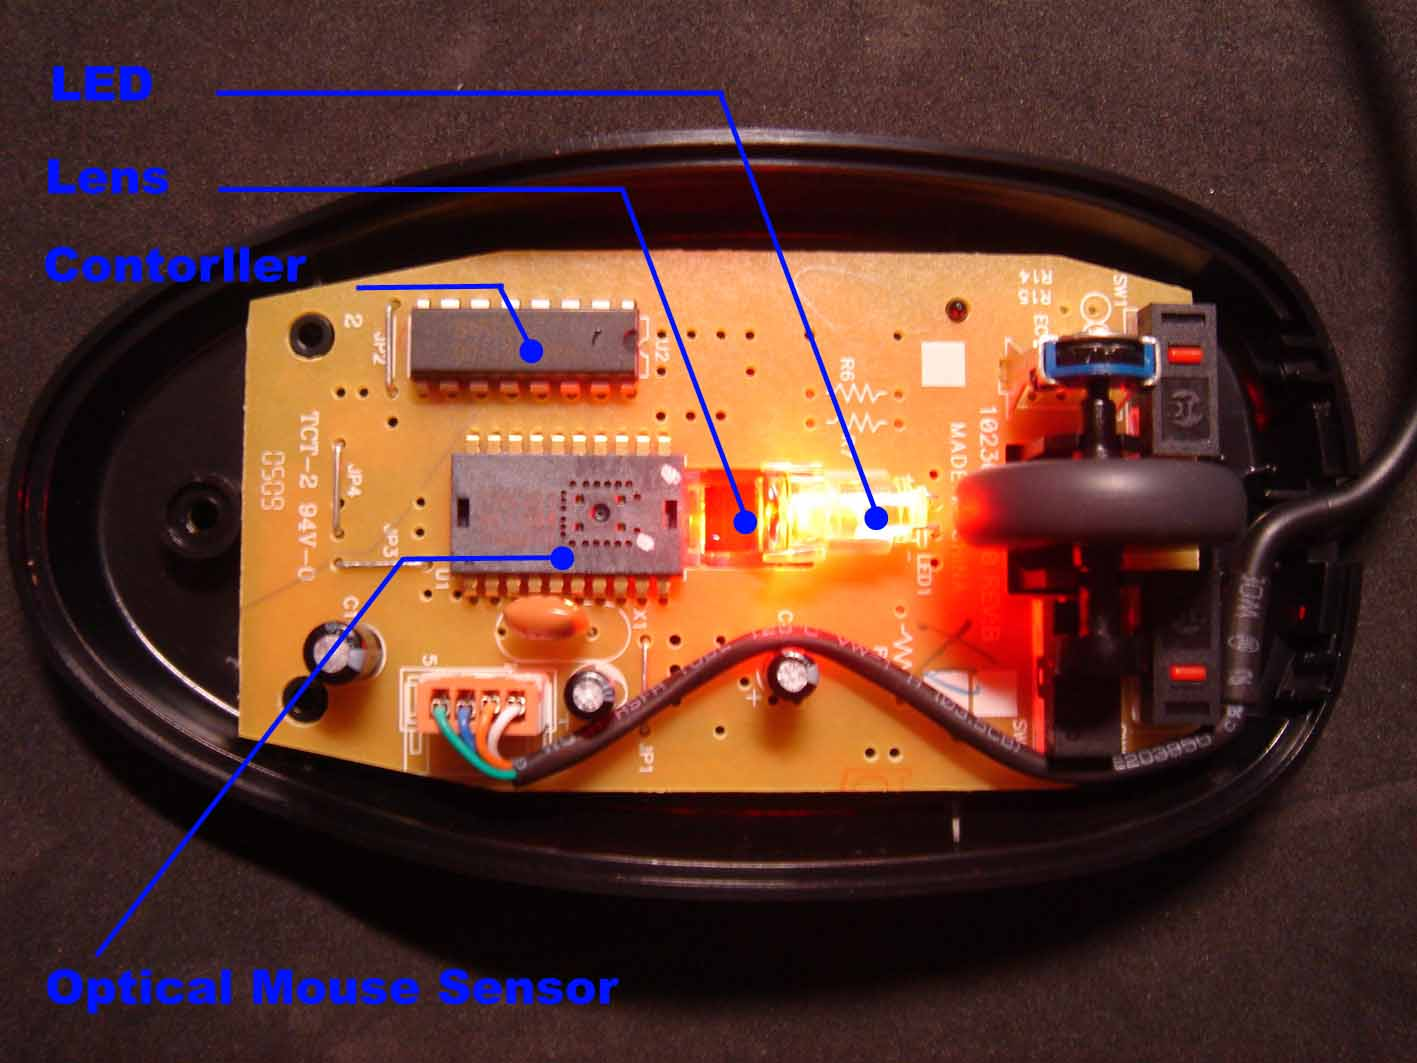 Optocoupler Interfacing With Avr Pic And 8051 as well Rock paper scissors training glove furthermore Schema info datasheets additionally Logitech G900 Gaming Mouse Review furthermore Optical Mouse. on optical sensor circuit